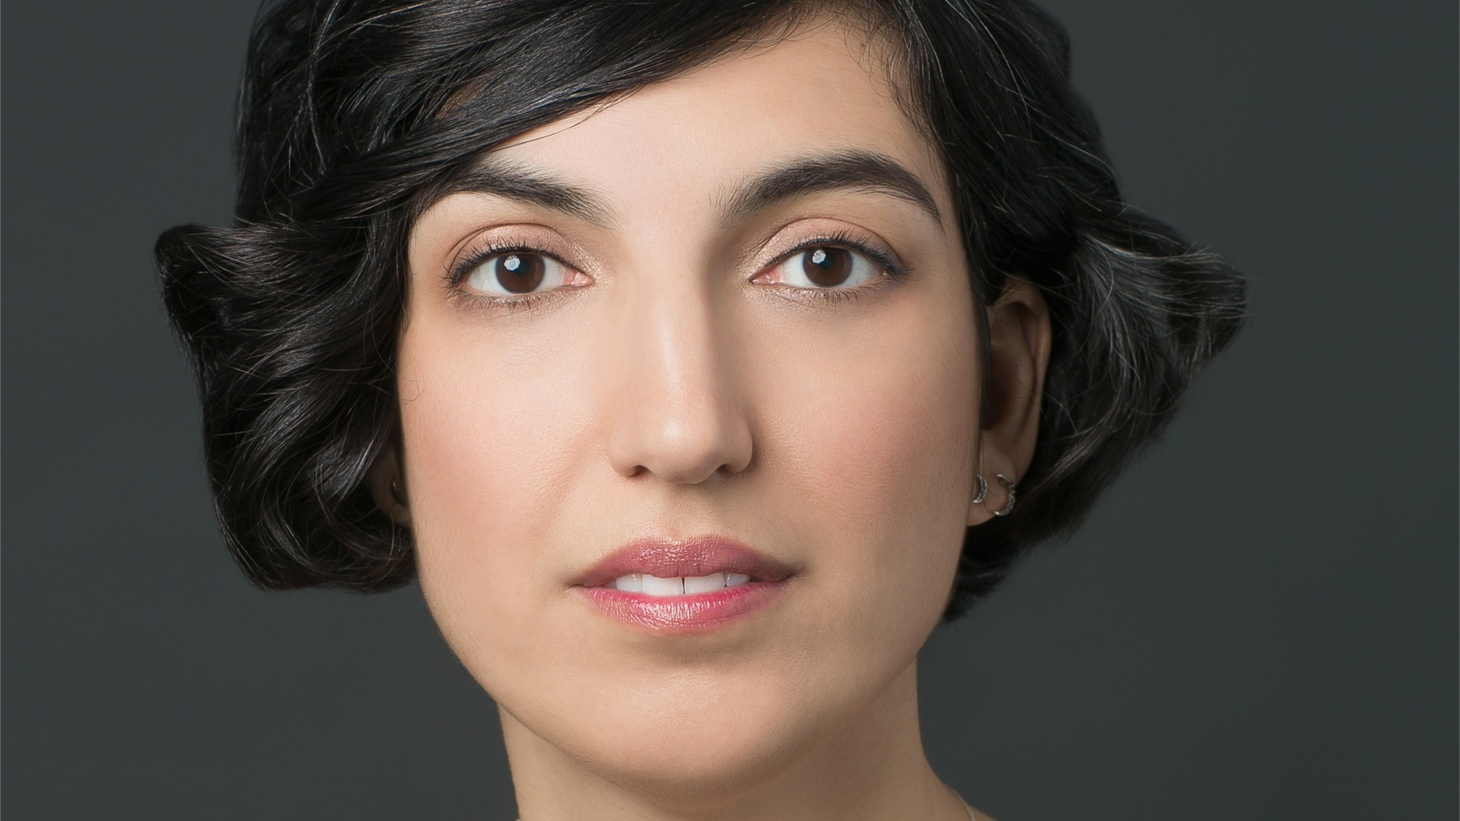 In 1995, email was a relatively new and exciting way to communicate. In Elif Batuman's first novel, 'The Idiot,' it's through email that a Harvard freshman finds her first love -- and the limits of digital communication. As she navigates her feelings, she stumbles over herself, as we all do on the path to self discovery.